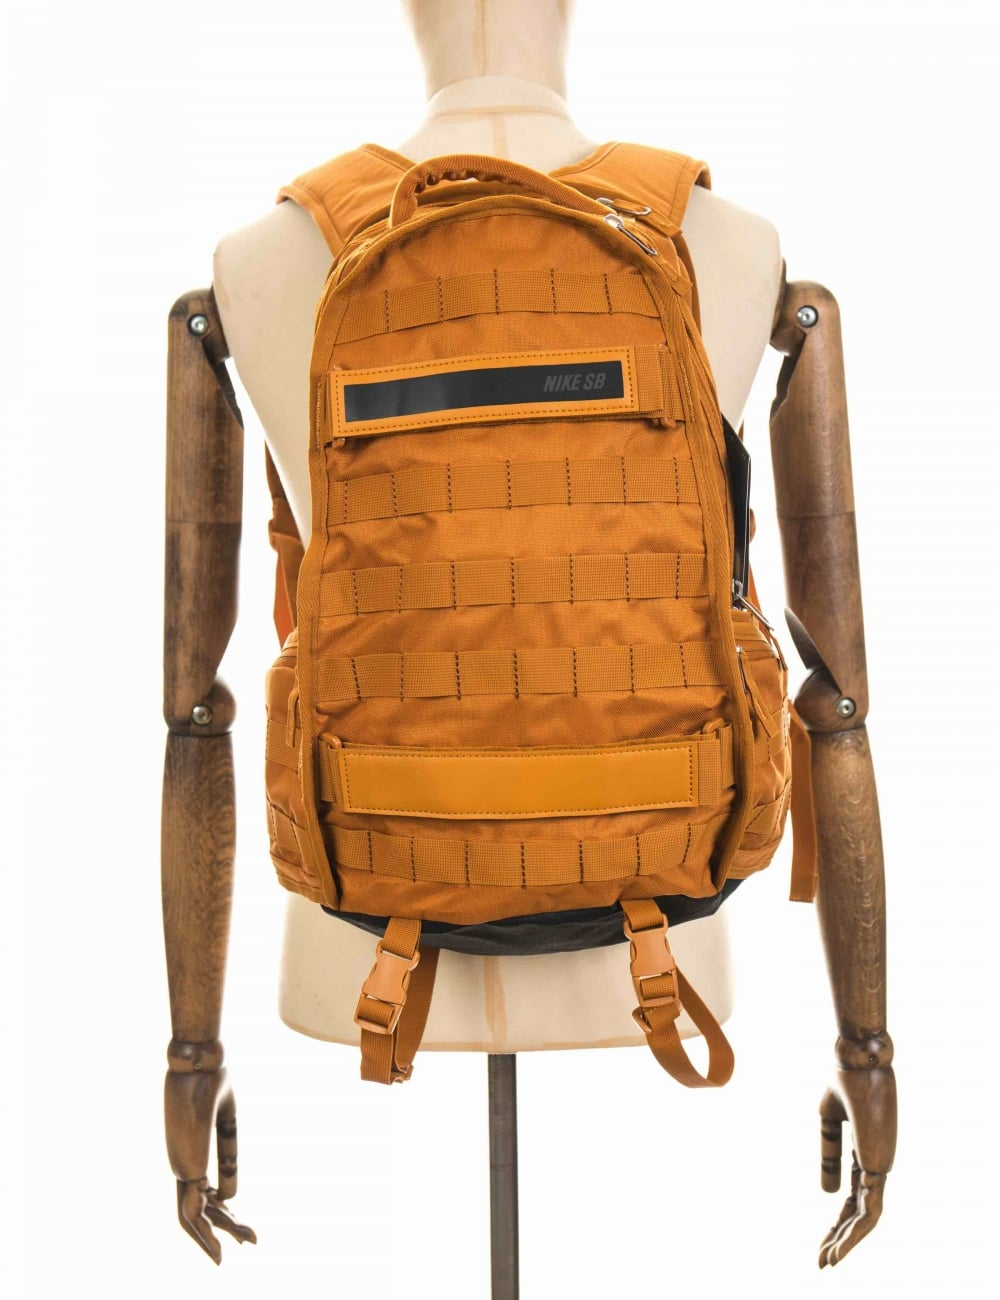 ea396a21969c Nike SB RPM Backpack - Desert Ochre - Accessories from Fat Buddha ...